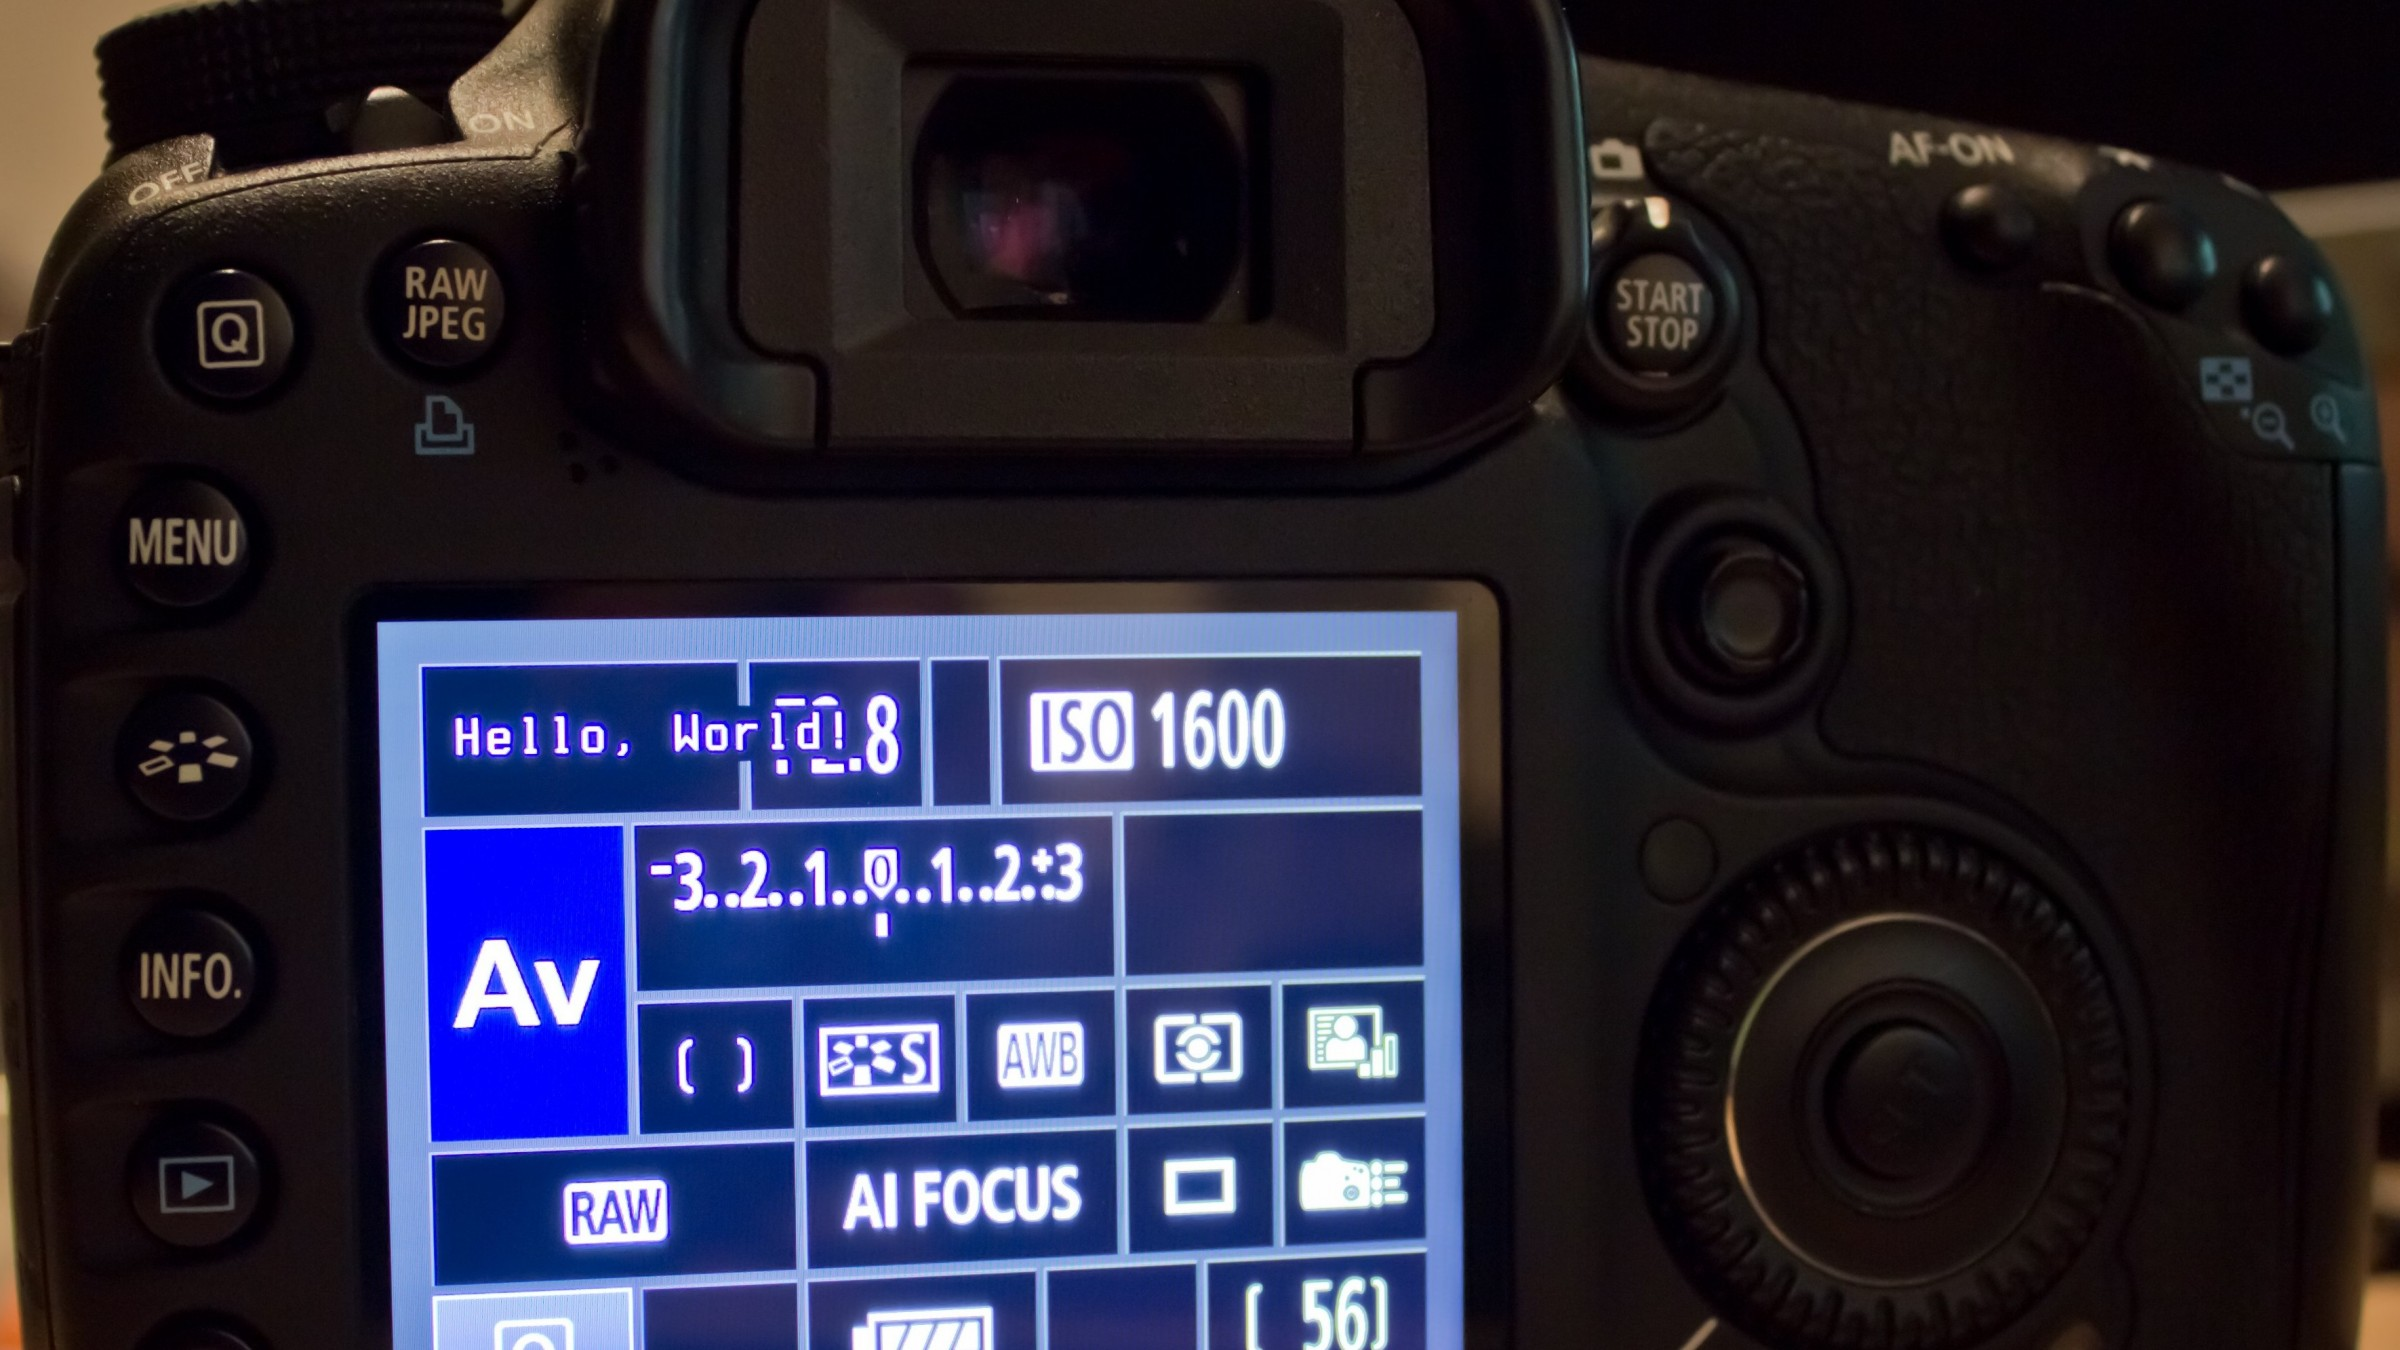 Magic Lantern is Coming to the Canon 7D